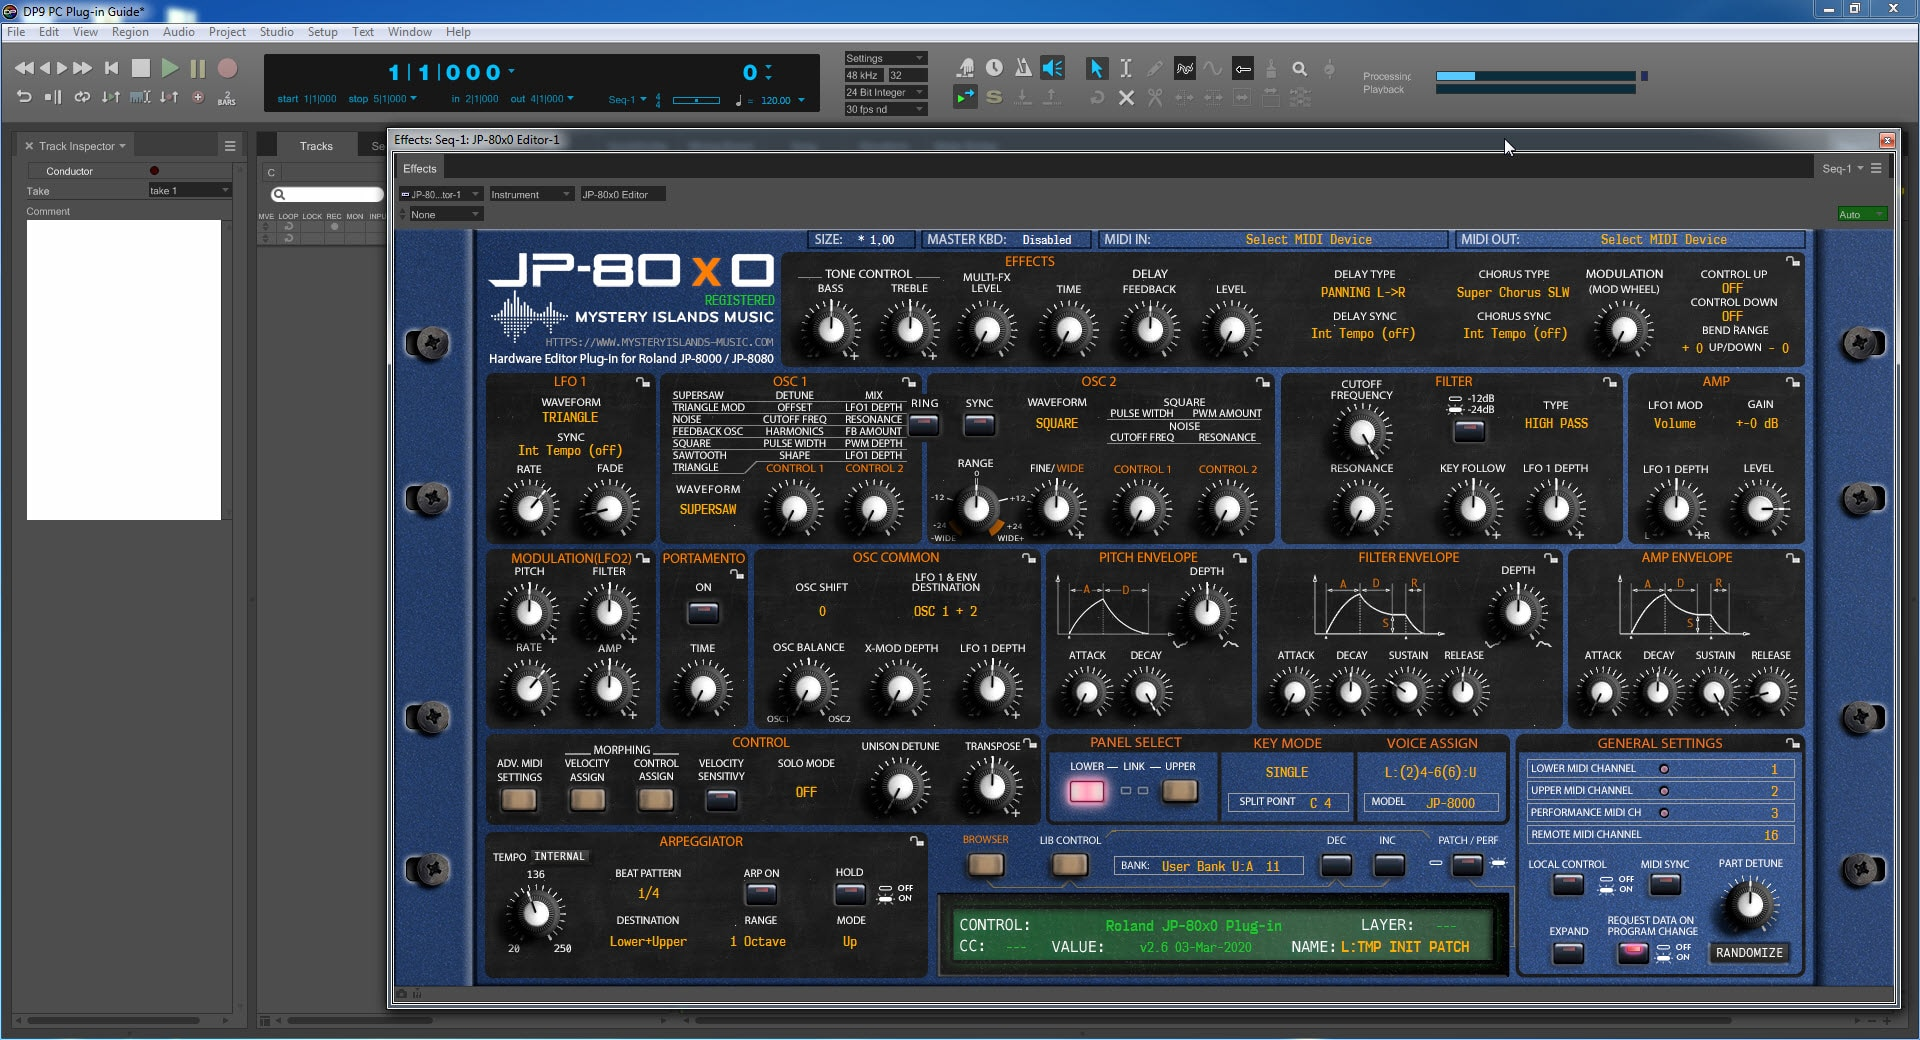 Digital Performer Guide - Our Plug-in Window will Appear